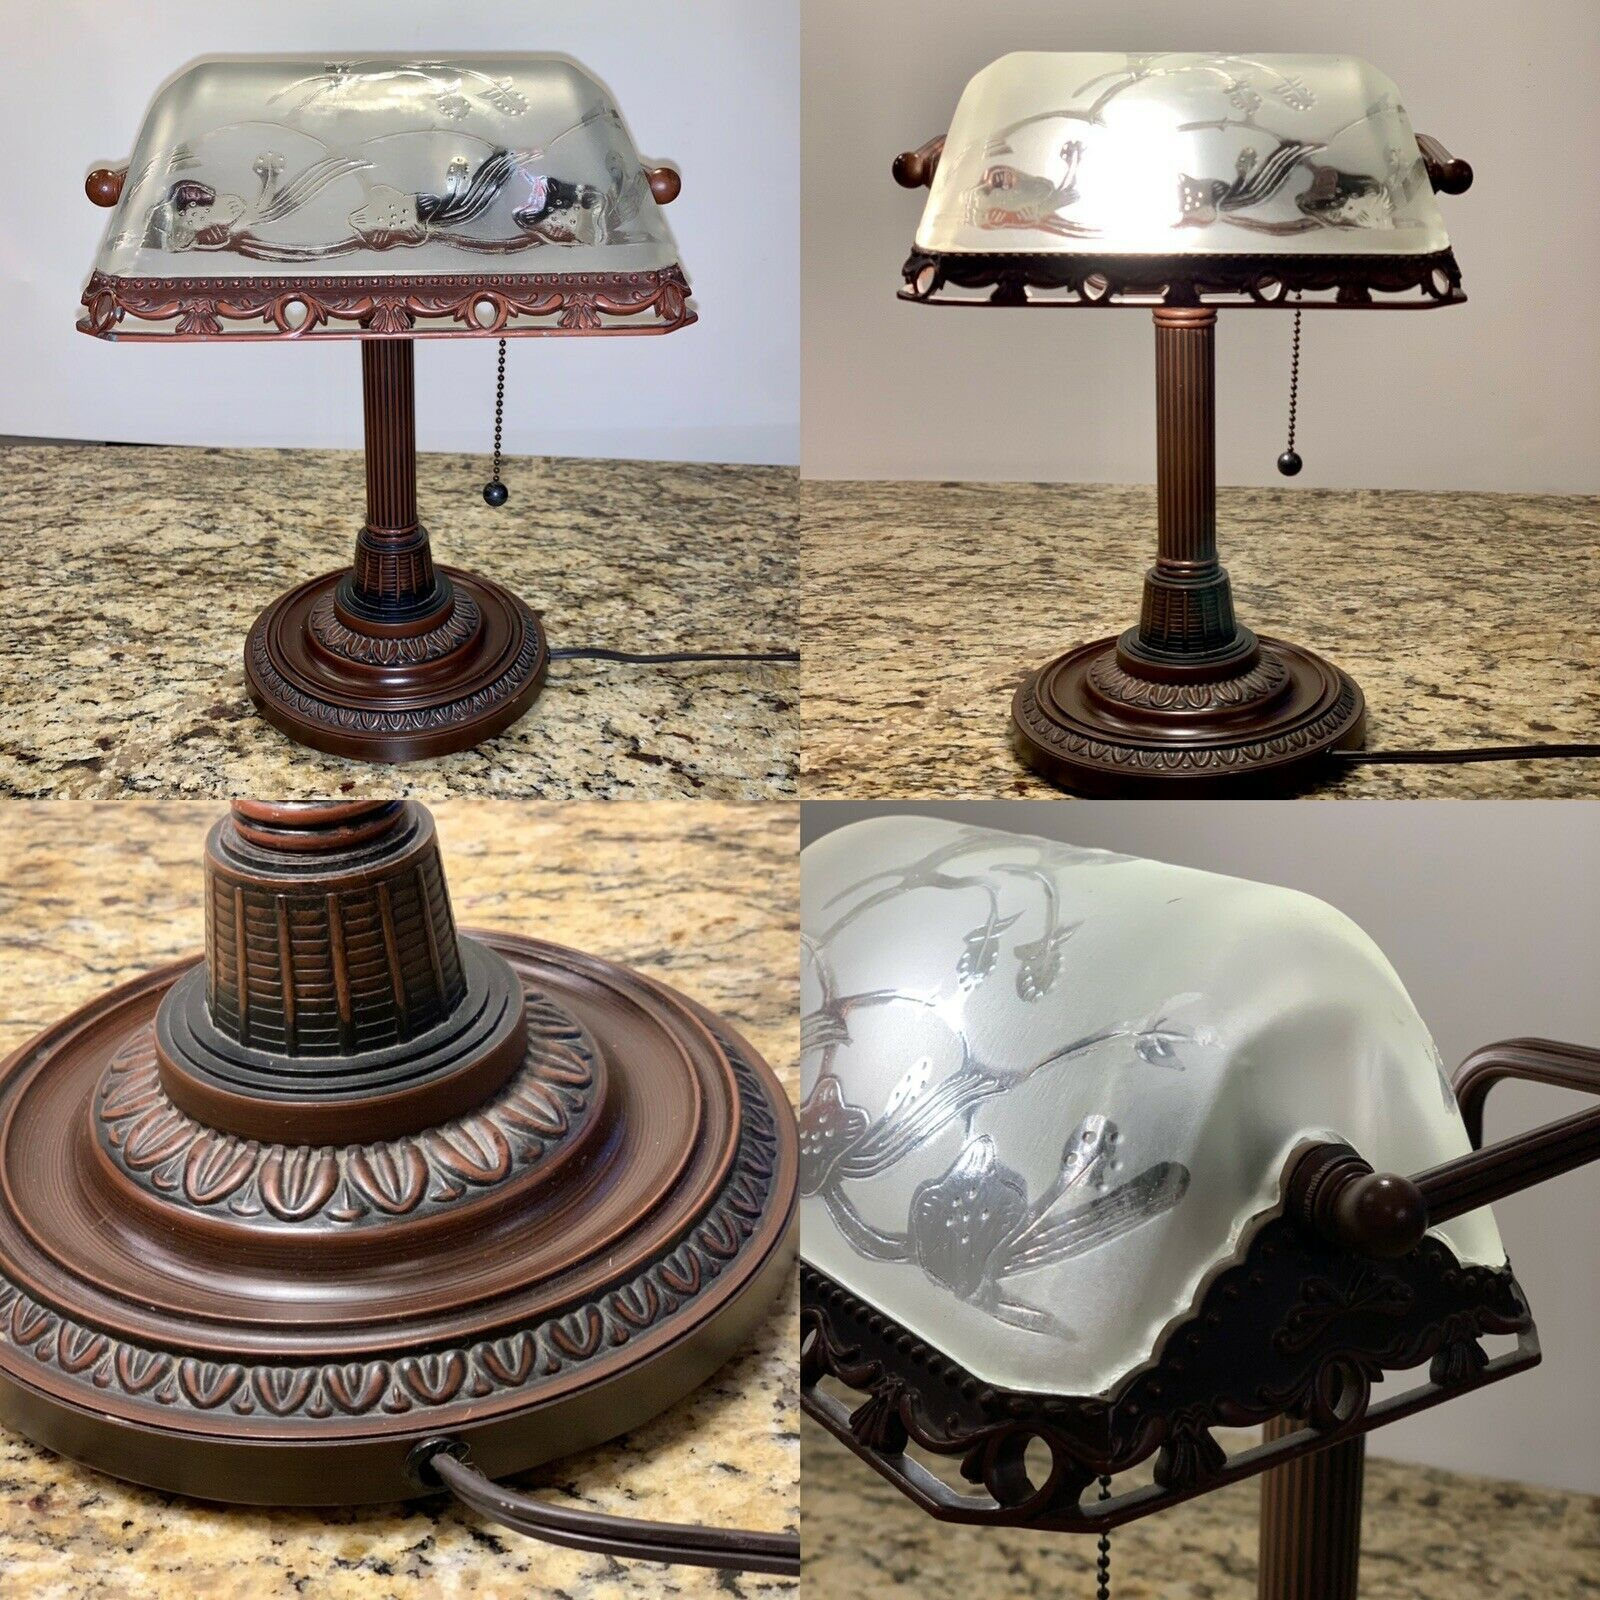 Vintage Piano Bankers Office Desk Den Frosted Glass Shade Table Lamp Light Ebay In 2020 Lamp Antique Table Lamps Table Lamp